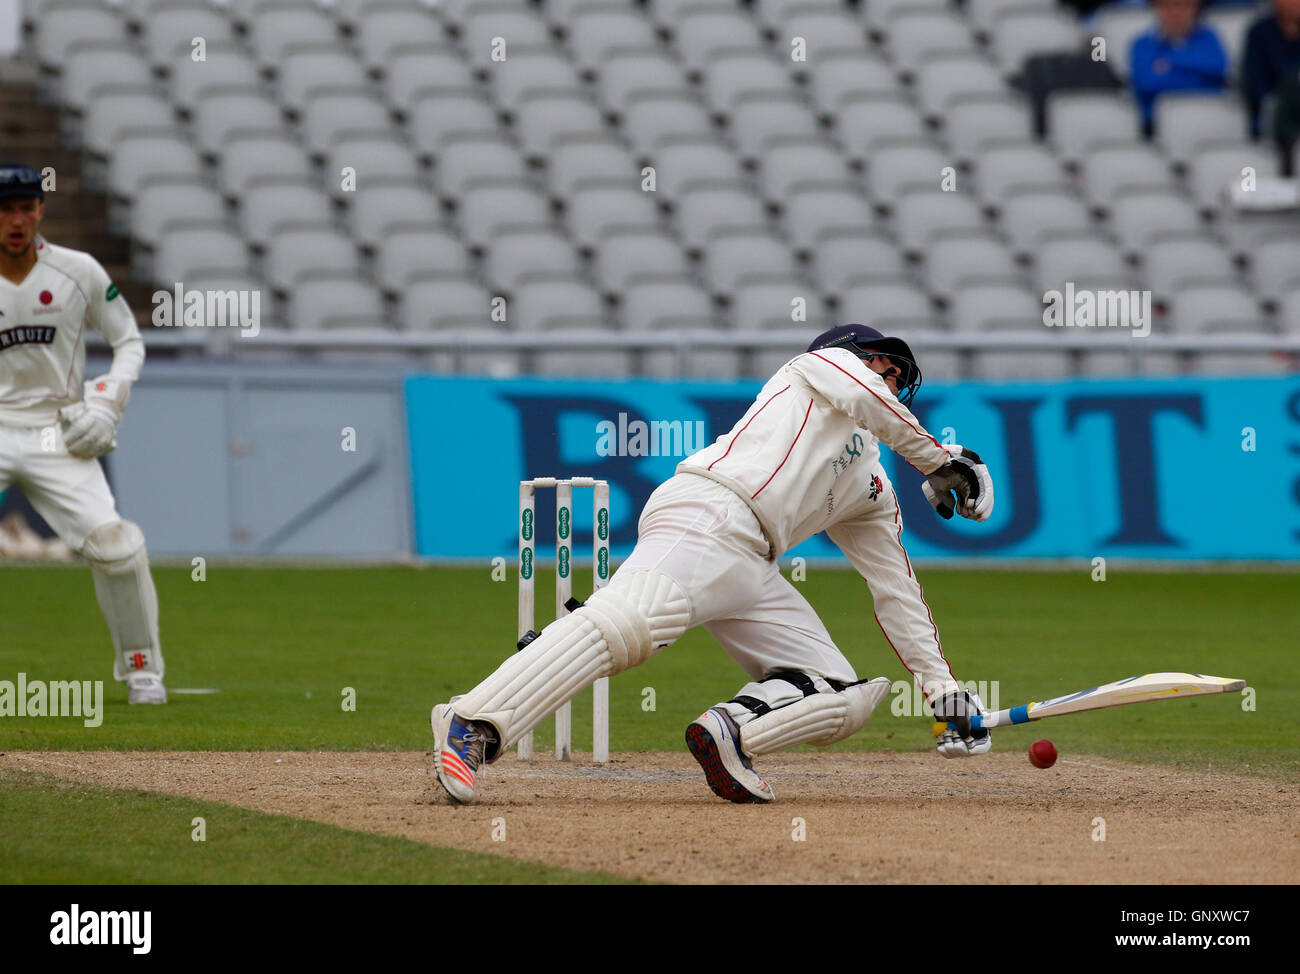 Old Trafford, Manchester, UK. 01st Sep, 2016. Specsavers County Championship. Lancashire versus Somerset. Lancashire - Stock Image